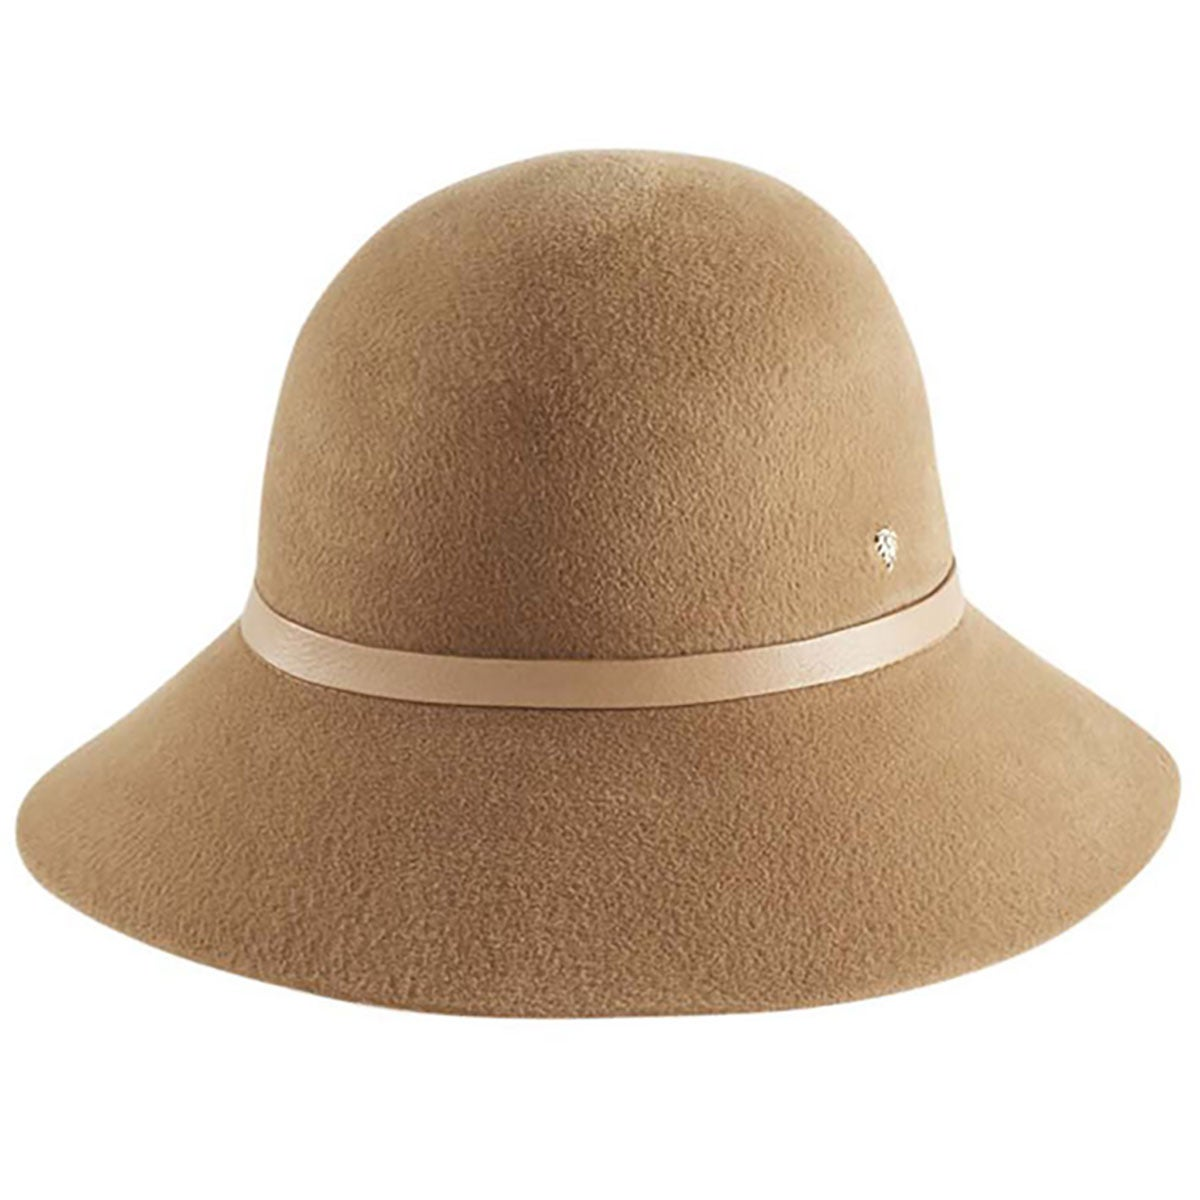 Women's Vintage Hats | Old Fashioned Hats | Retro Hats Bitsy 9 Cloche $360.00 AT vintagedancer.com